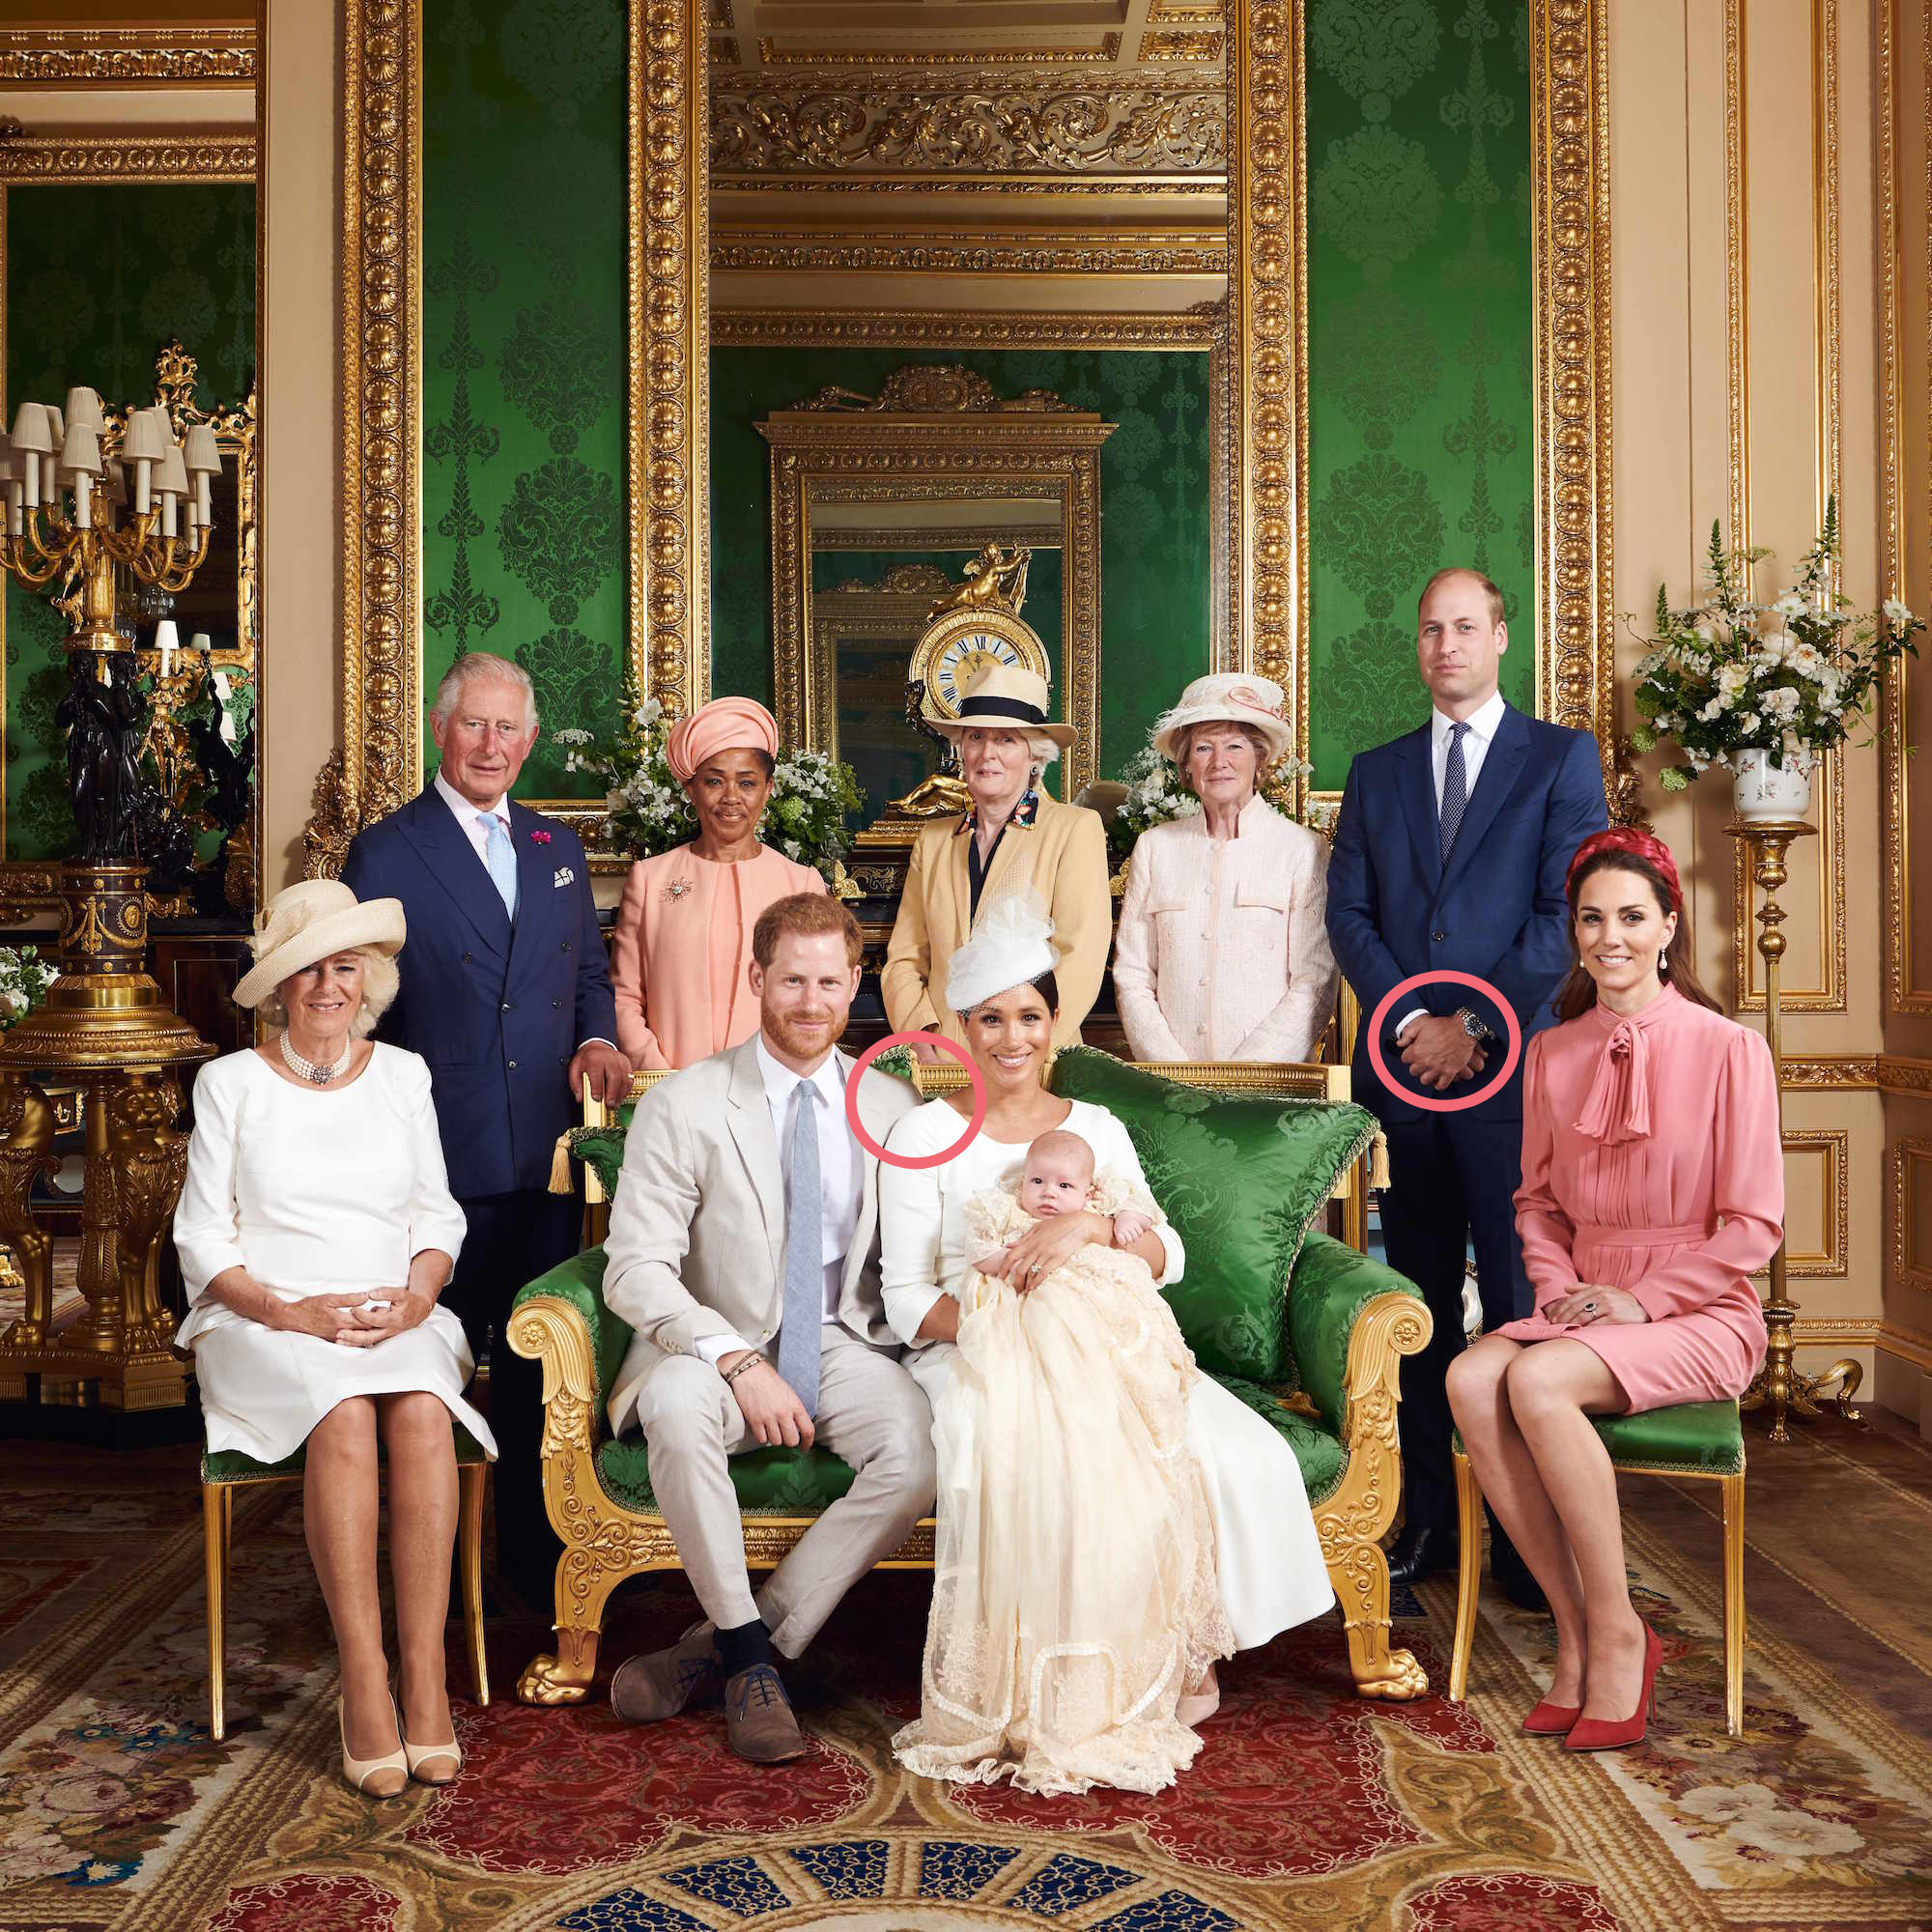 Body Language Experts Analyze Kate Middleton and Prince William at Archie's Christening